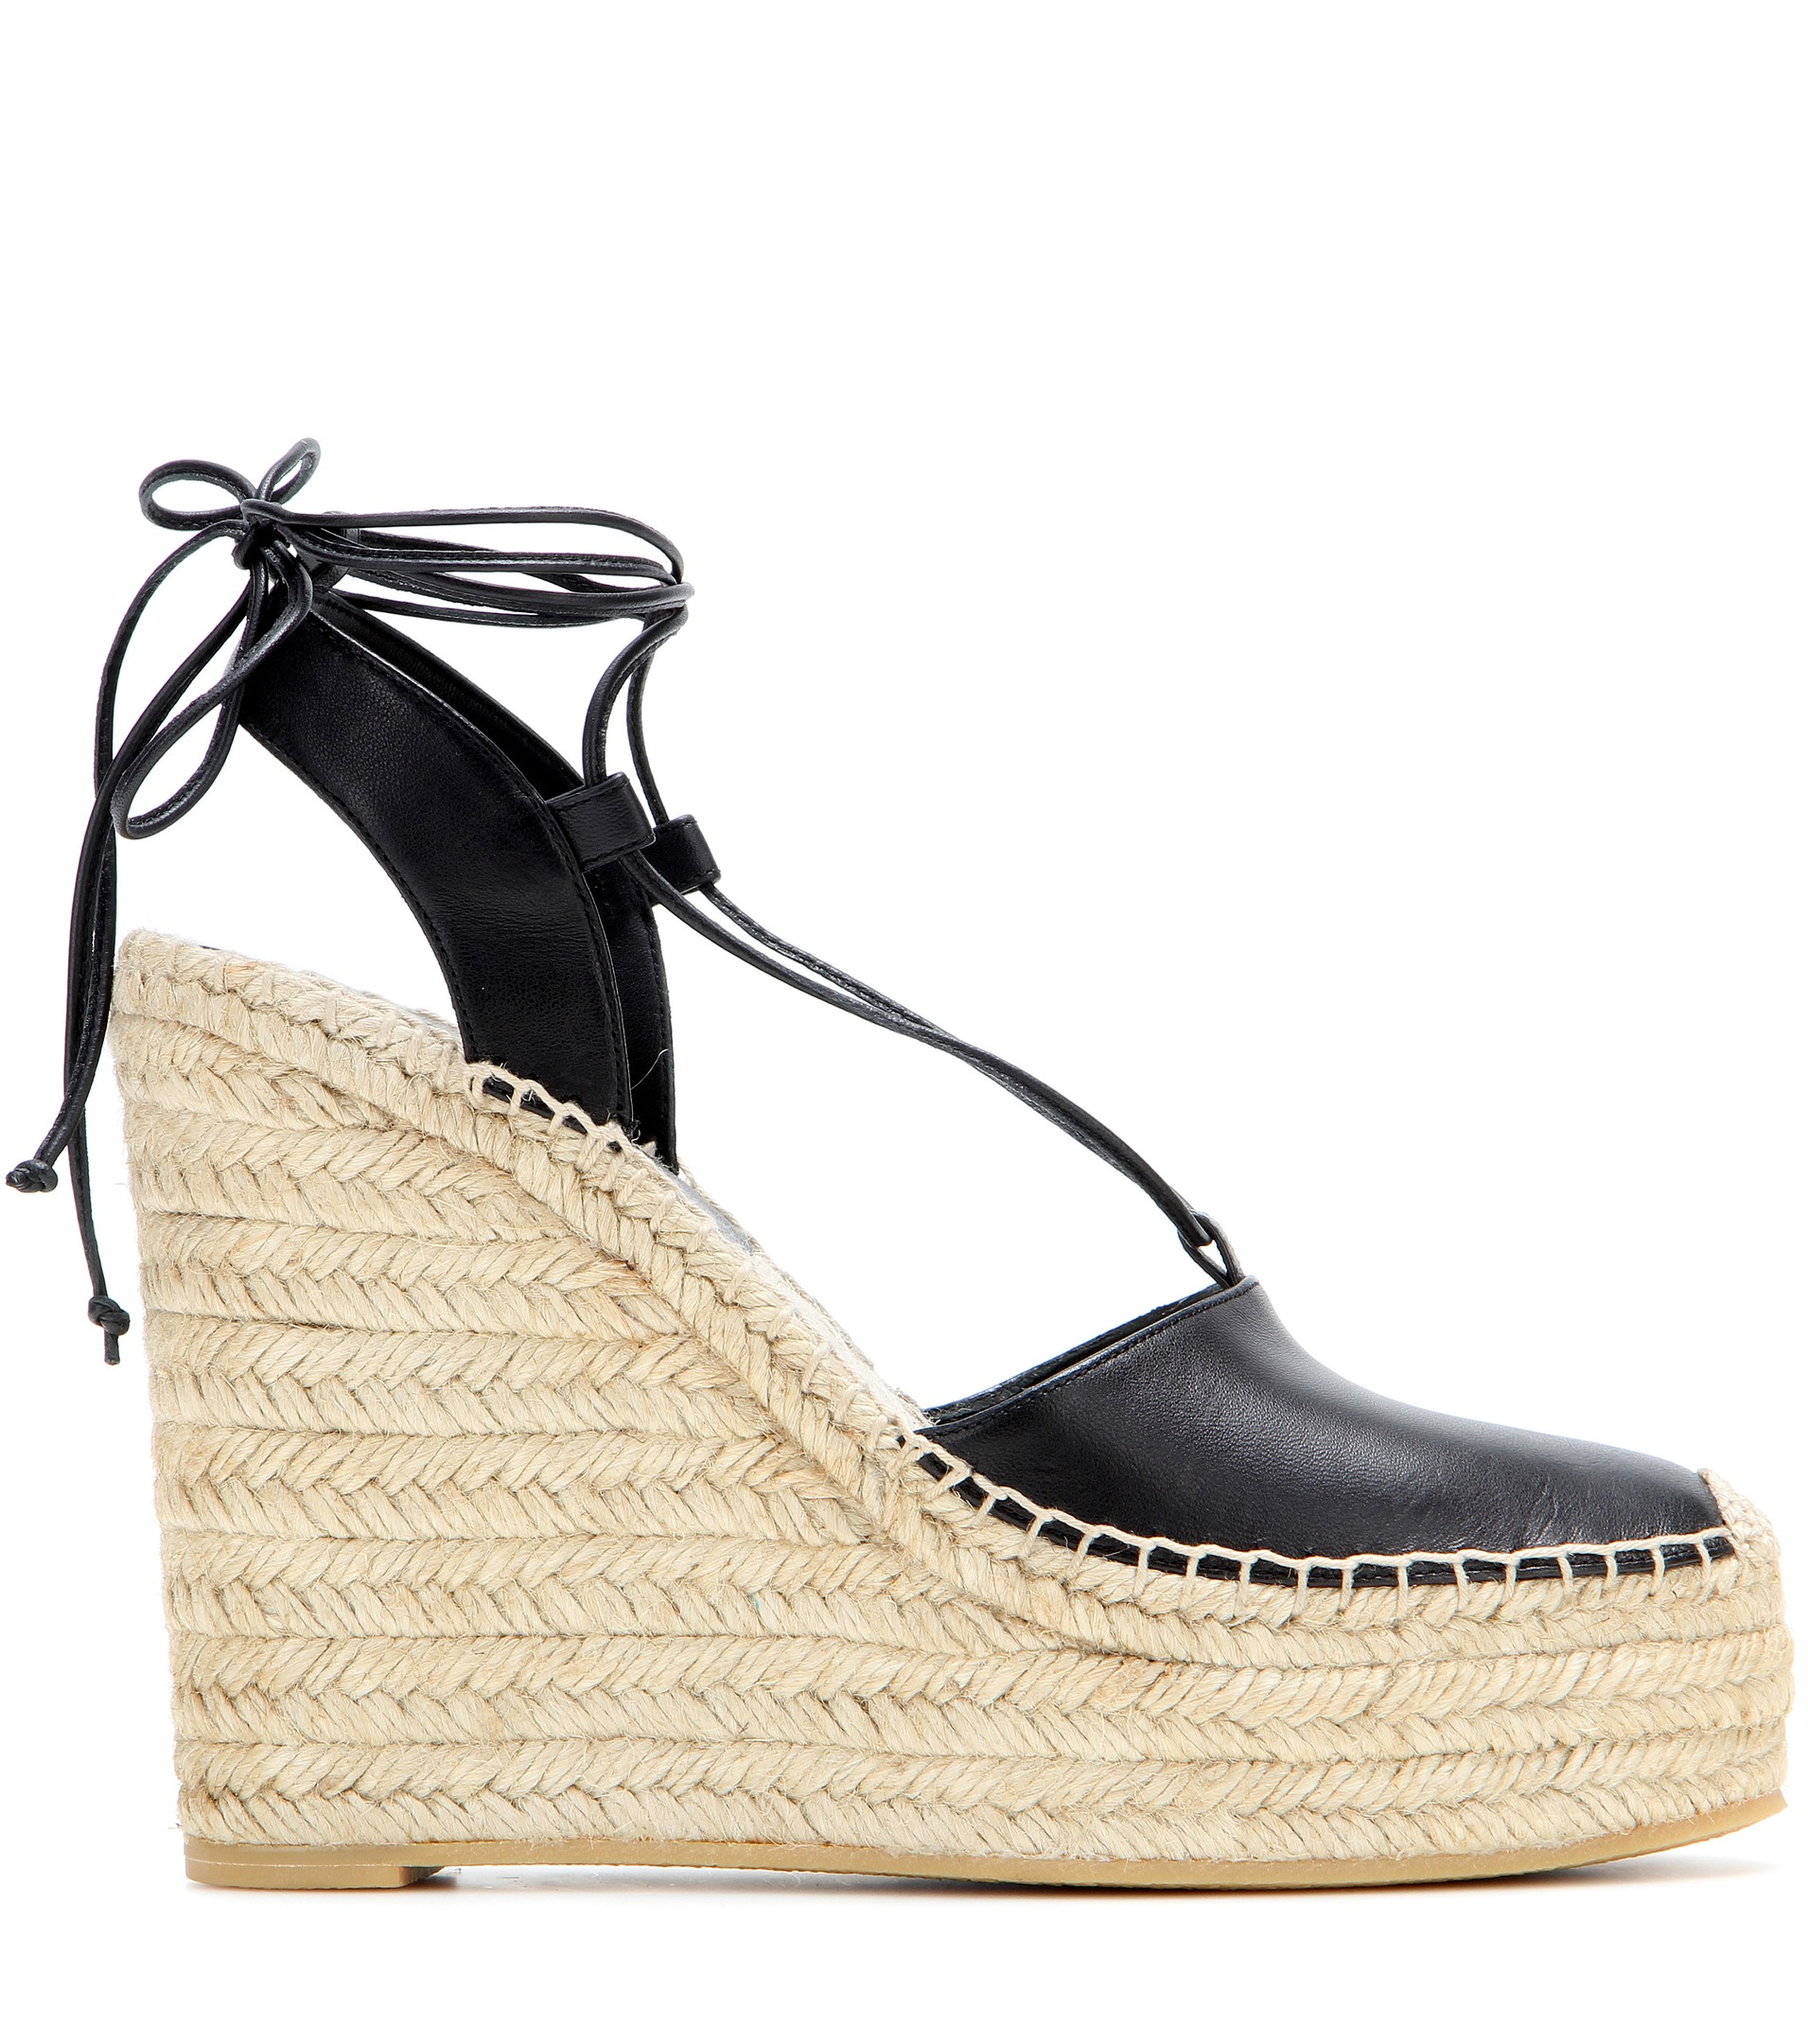 e08a0b58cbe Lyst - Saint Laurent Leather Espadrille Wedge Sandals in Natural